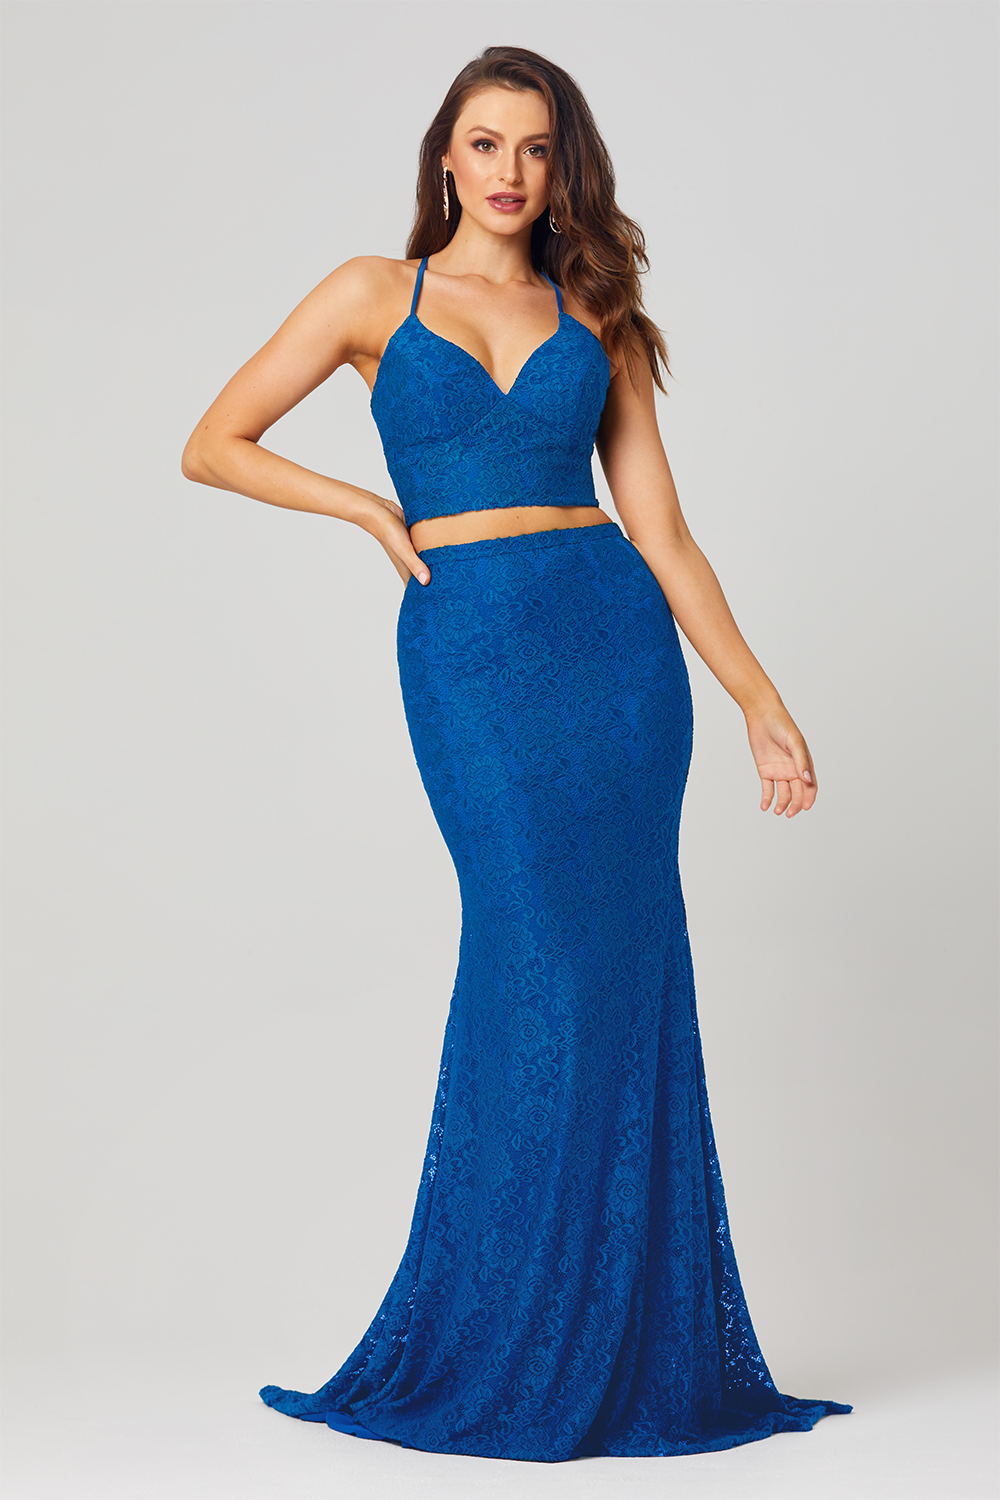 Gabbi Co-Ord Lace Formal Dress – PO813 Cobalt